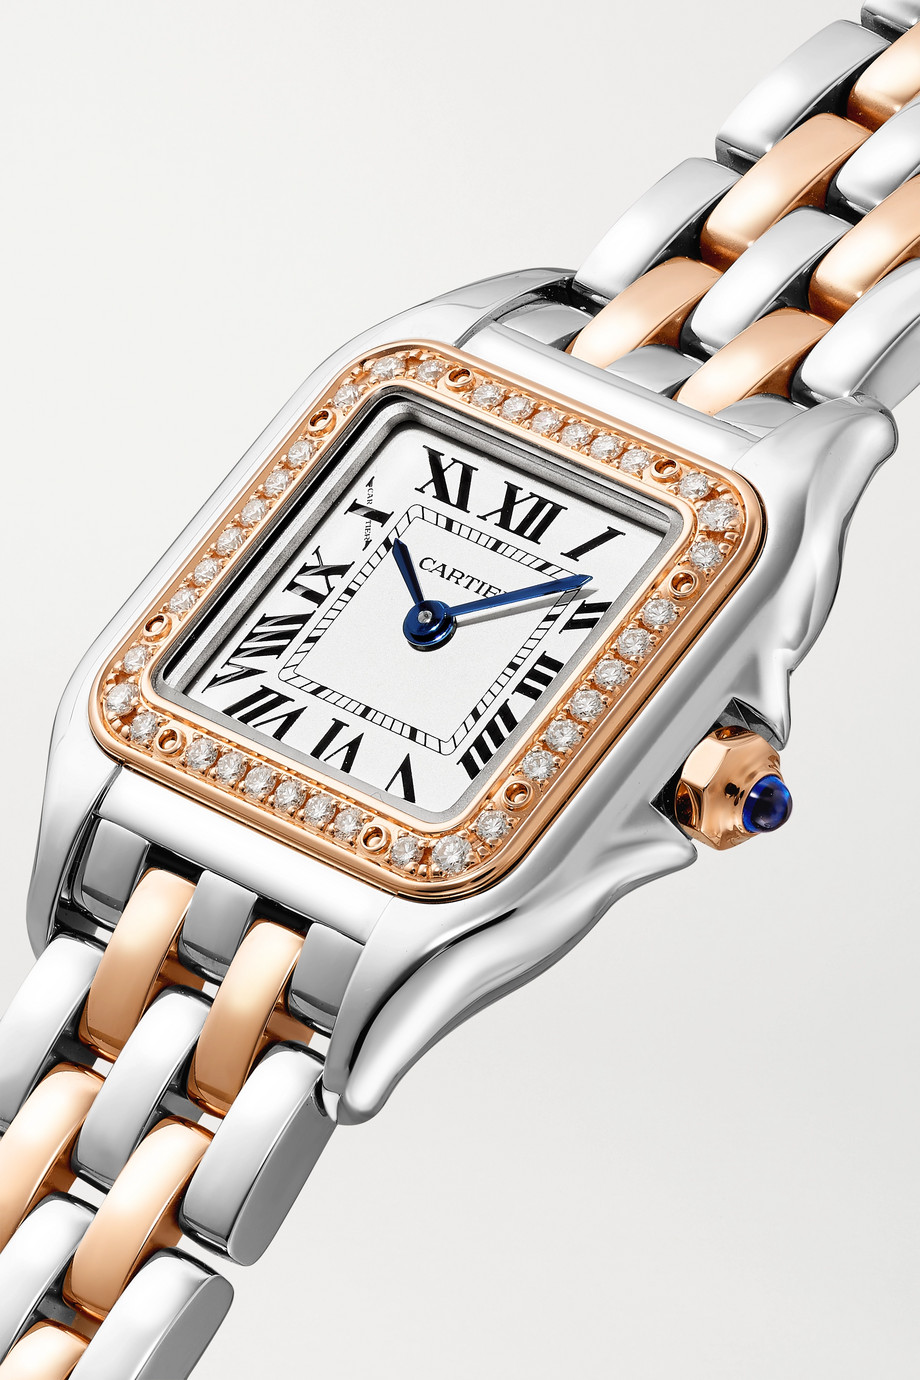 Cartier Montre en or rose 18 carats, acier inoxydable et diamants Panthère de Cartier Small 22 mm